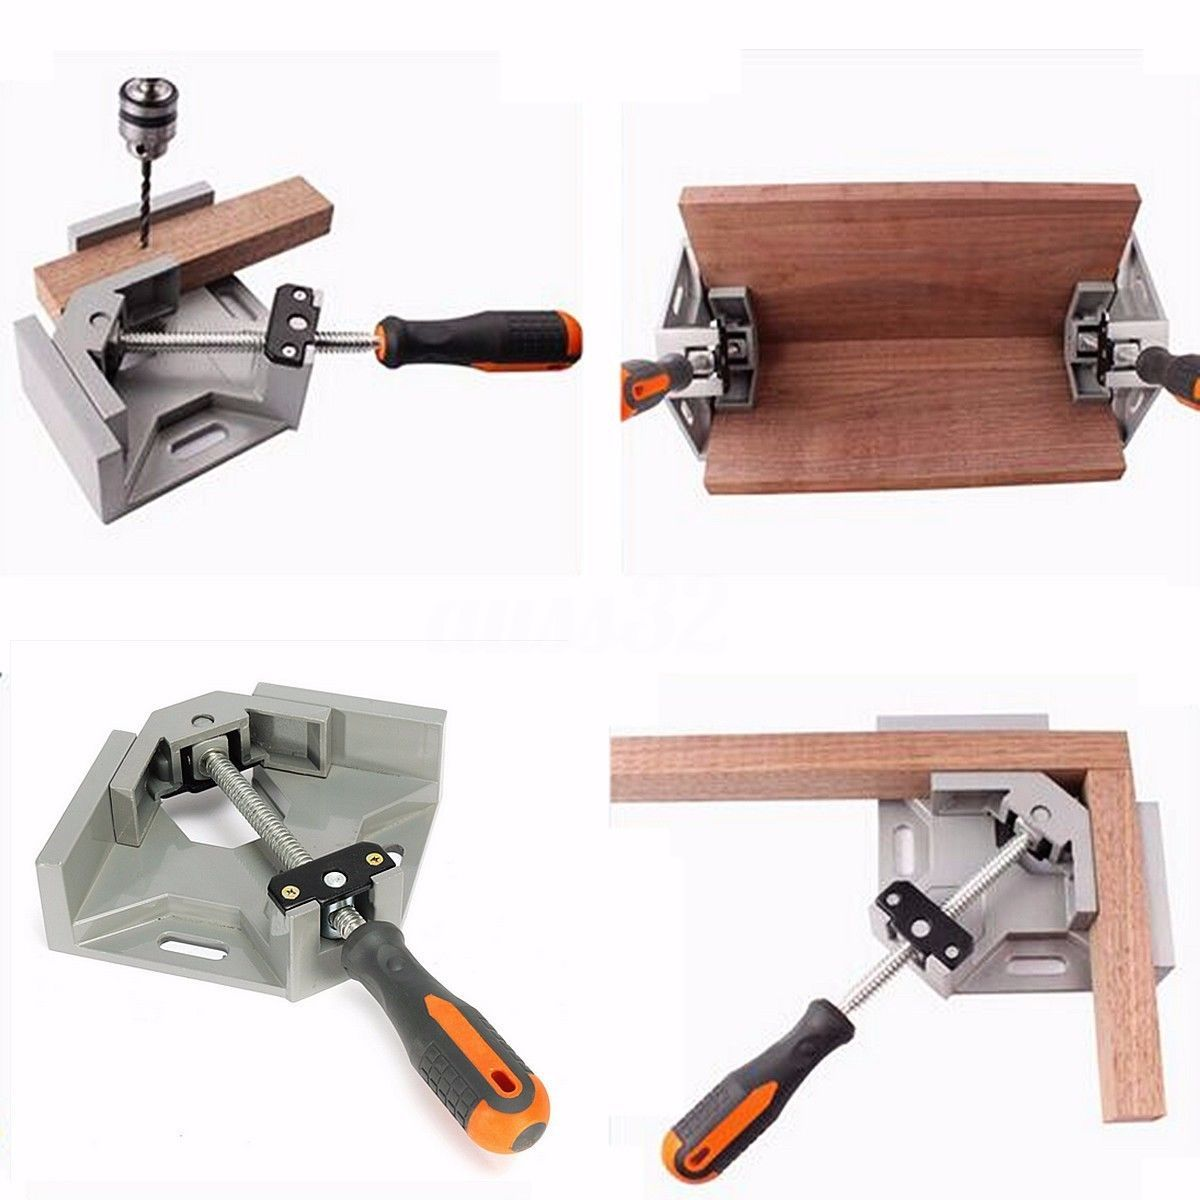 90 Degree Corner Right Angle Carbide Vice Clamps Woodworking Frame ...